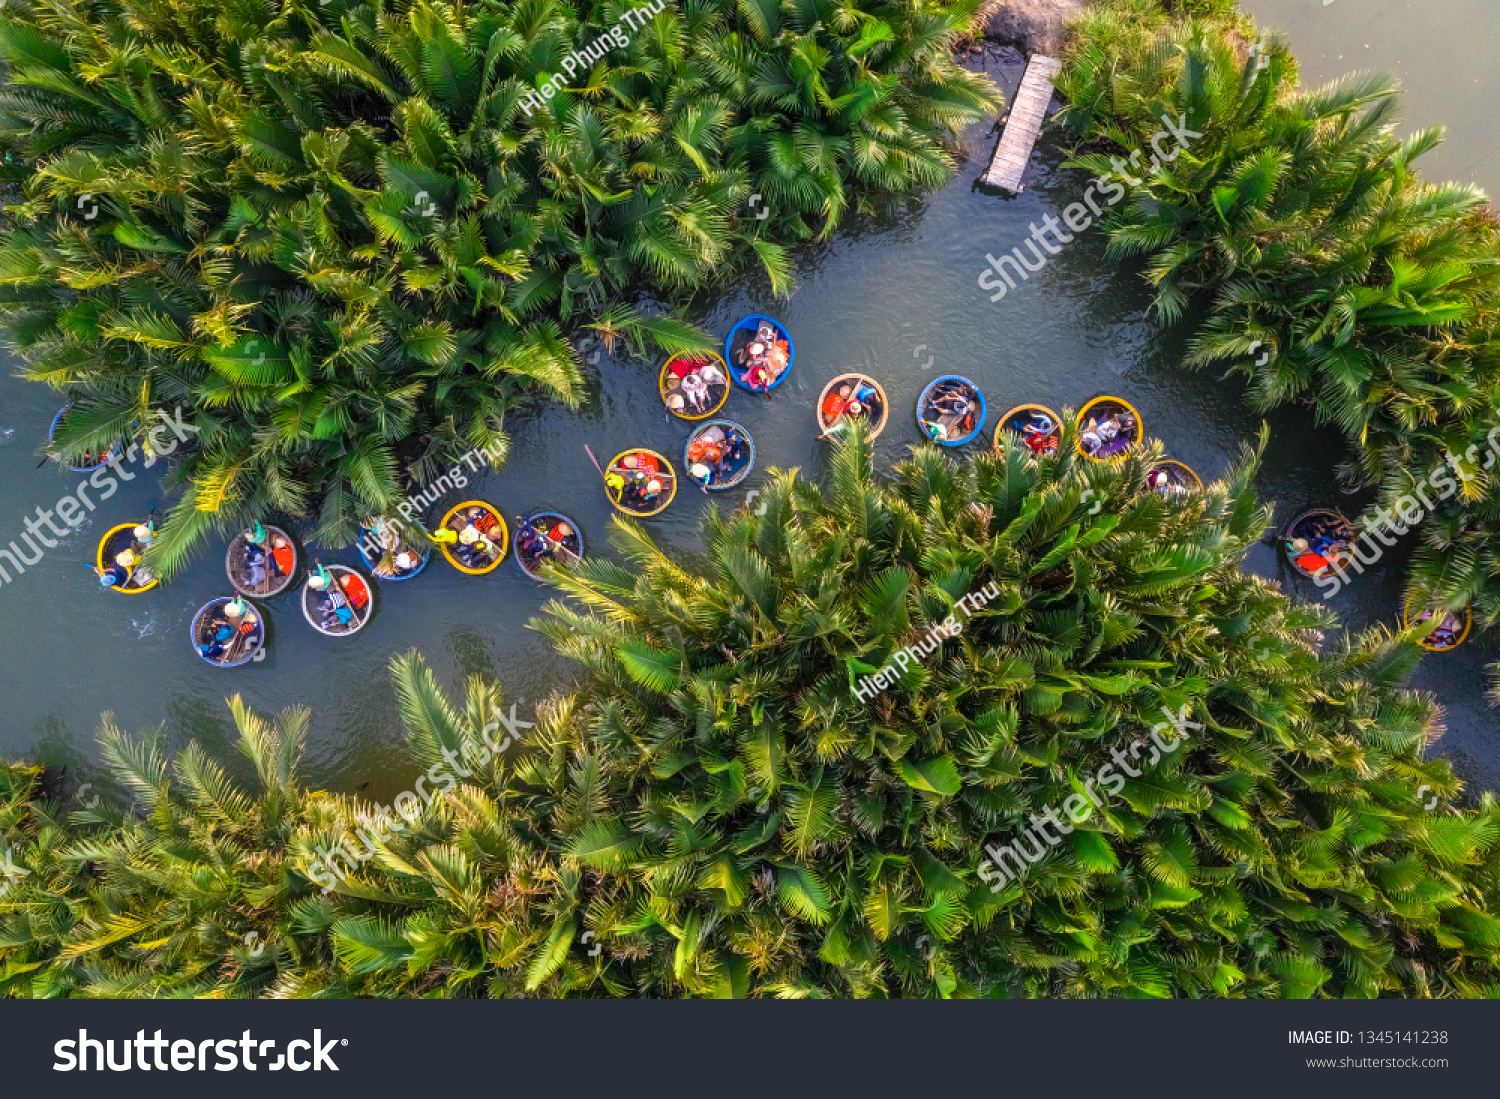 Aerial view, tourists from China, Korea, America and Russia are relax and experiencing a basket boat tour at the coconut water ( mangrove palm ) forest in Cam Thanh village, Hoi An, Quang Nam, Vietnam #1345141238